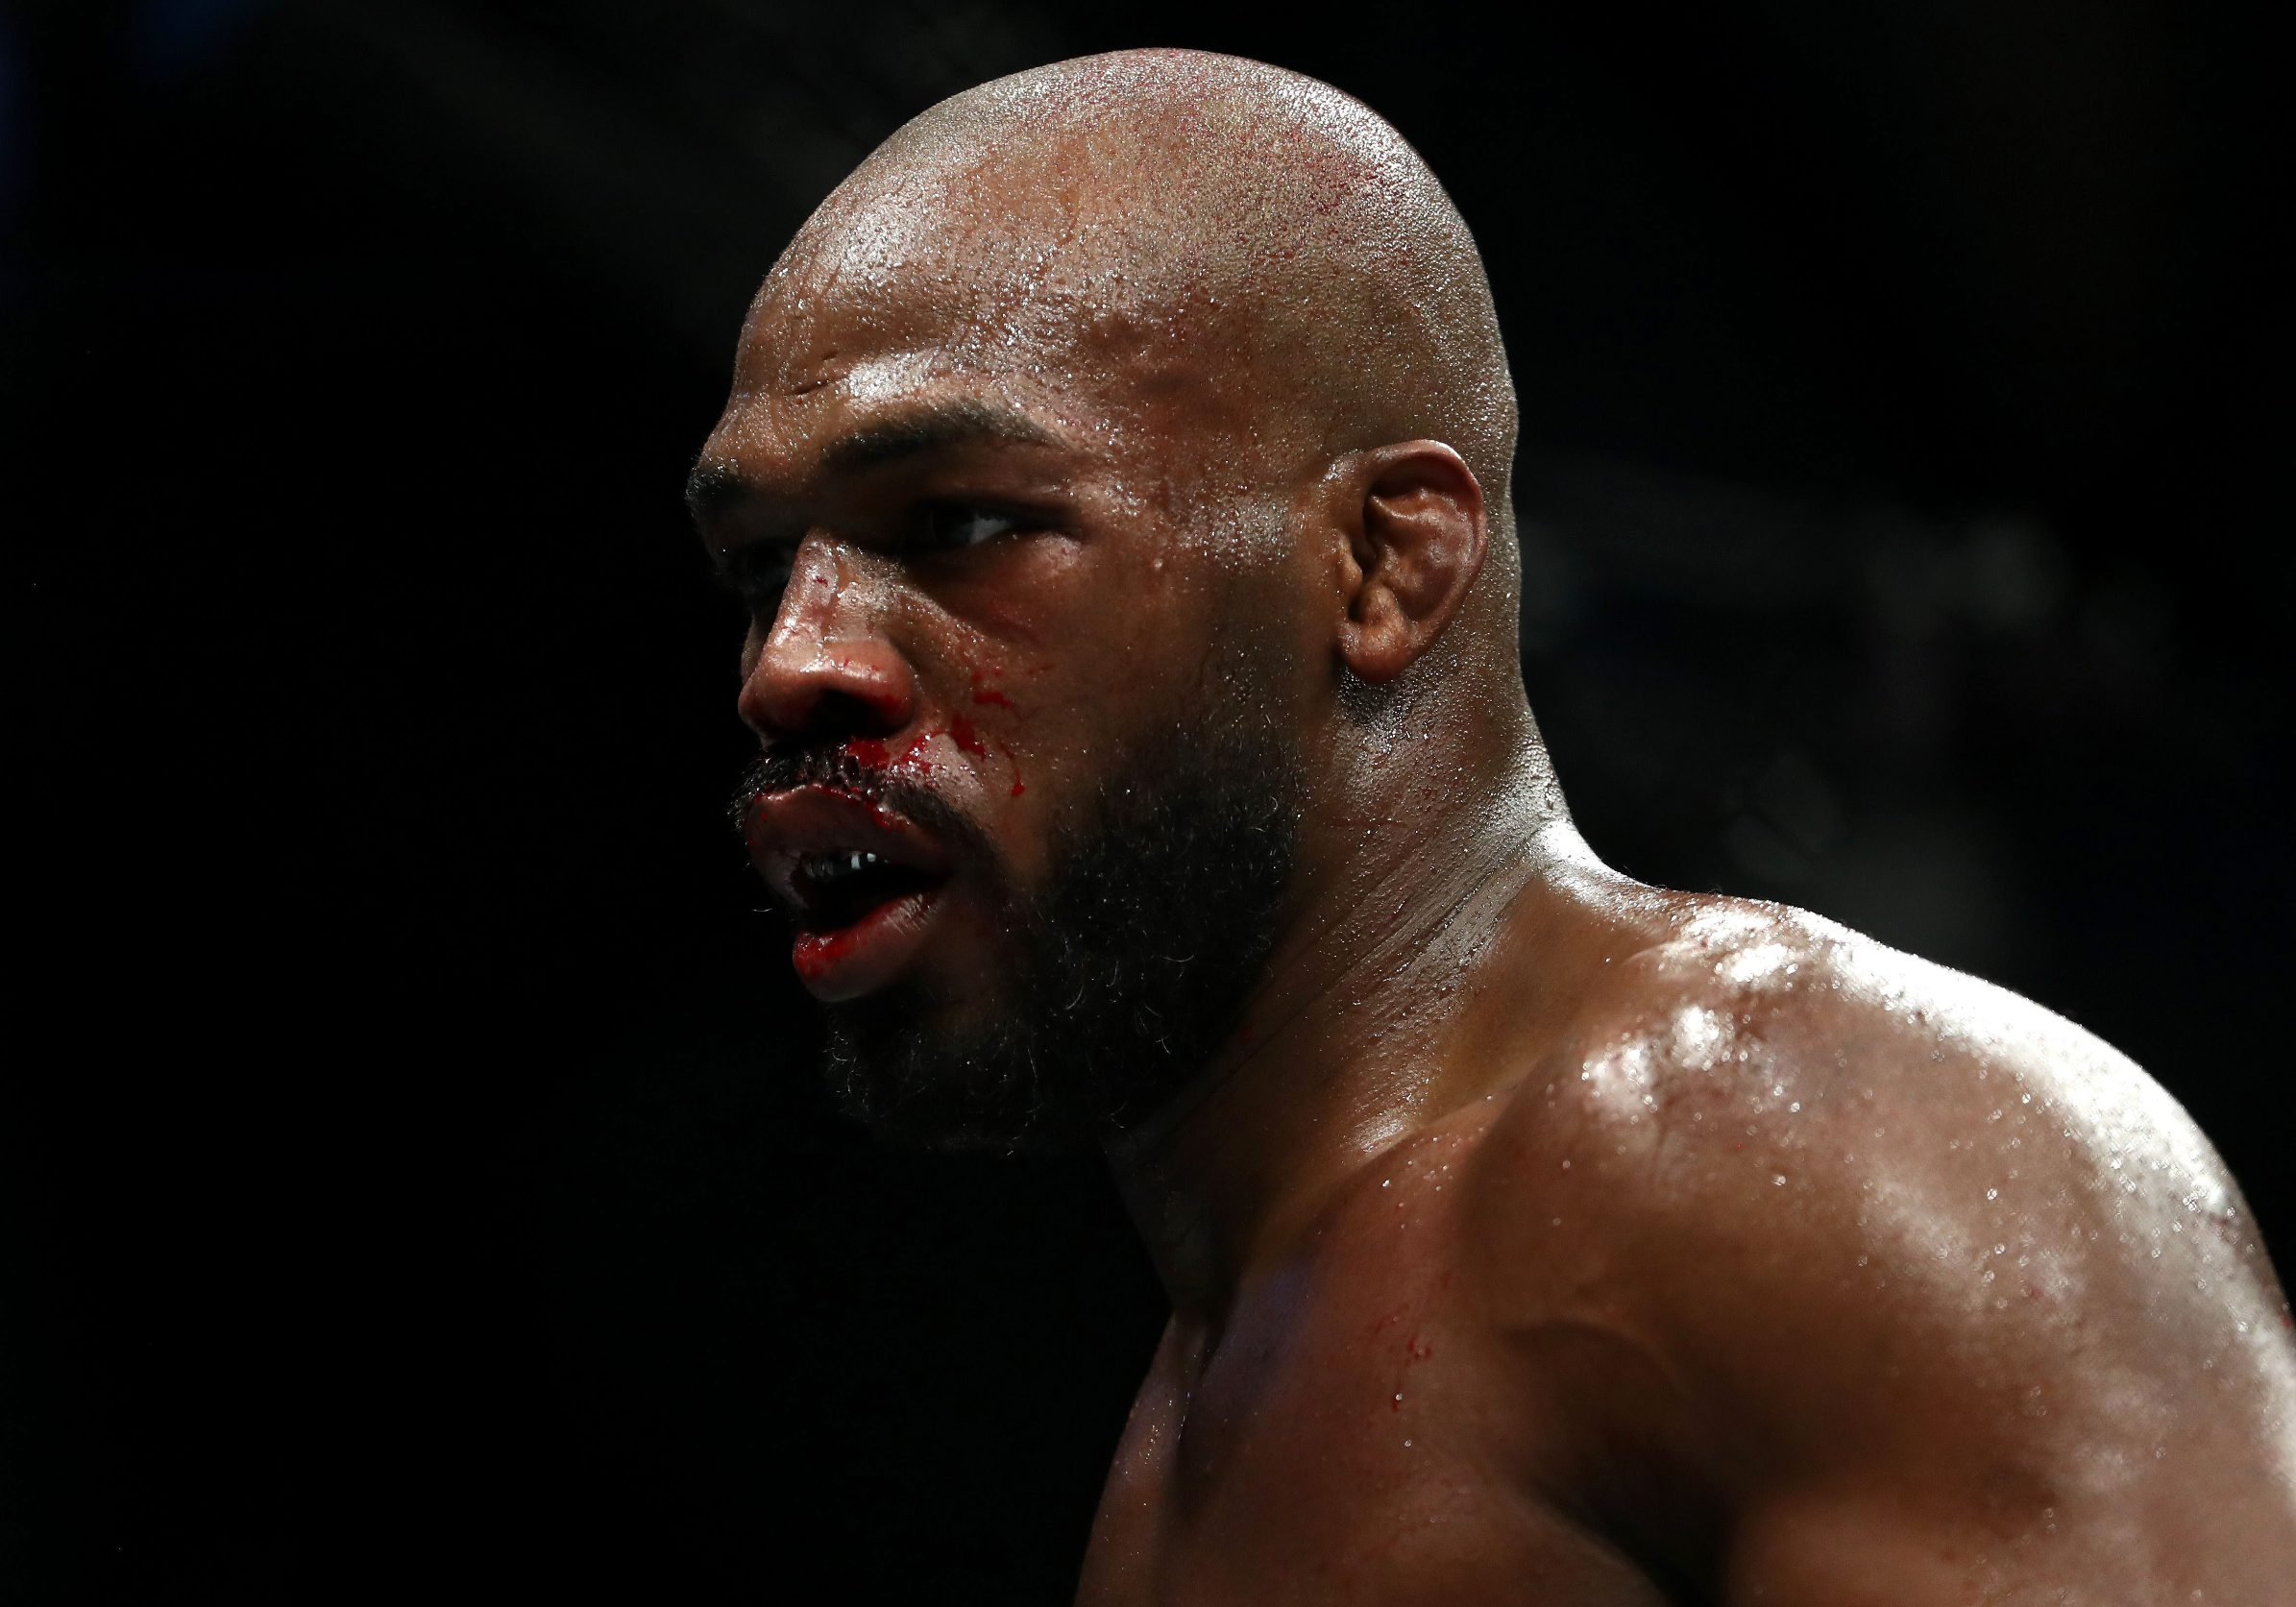 HOUSTON, TEXAS - FEBRUARY 08: Jon Jones walks to his corner in between rounds against Dominick Reyes in their UFC Light Heavyweight Championship bout during UFC 247 at Toyota Center on February 08, 2020 in Houston, Texas.   Ronald Martinez/Getty Images/AFP == FOR NEWSPAPERS, INTERNET, TELCOS & TELEVISION USE ONLY ==